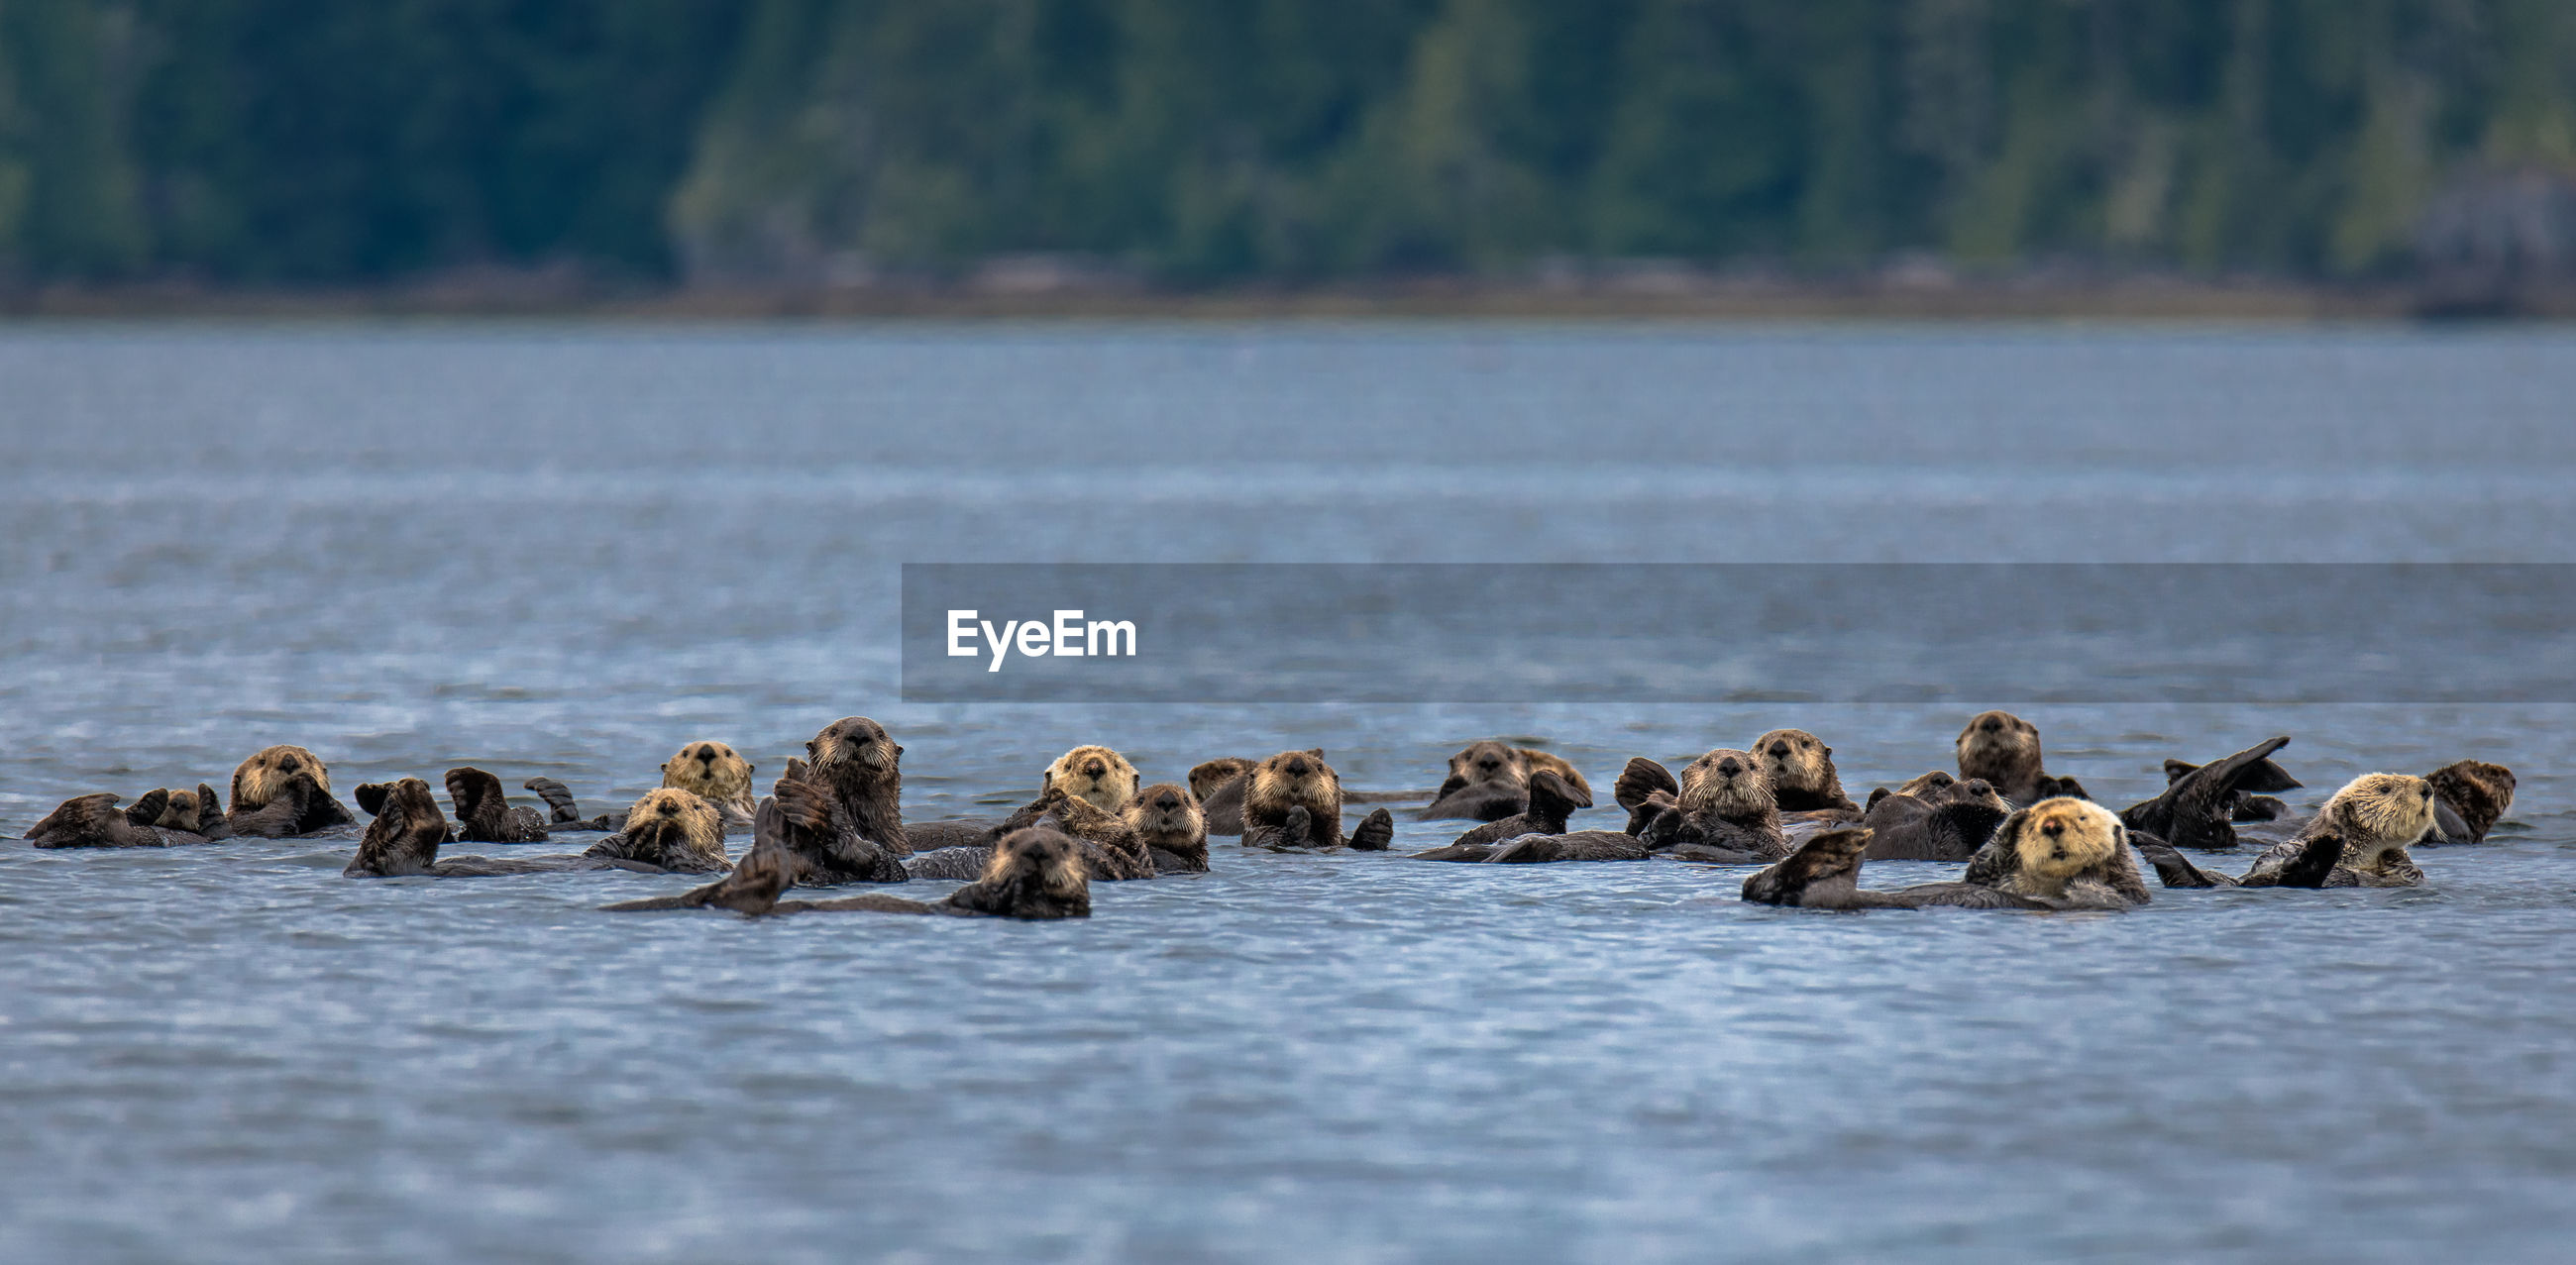 View of otters swimming in ocean